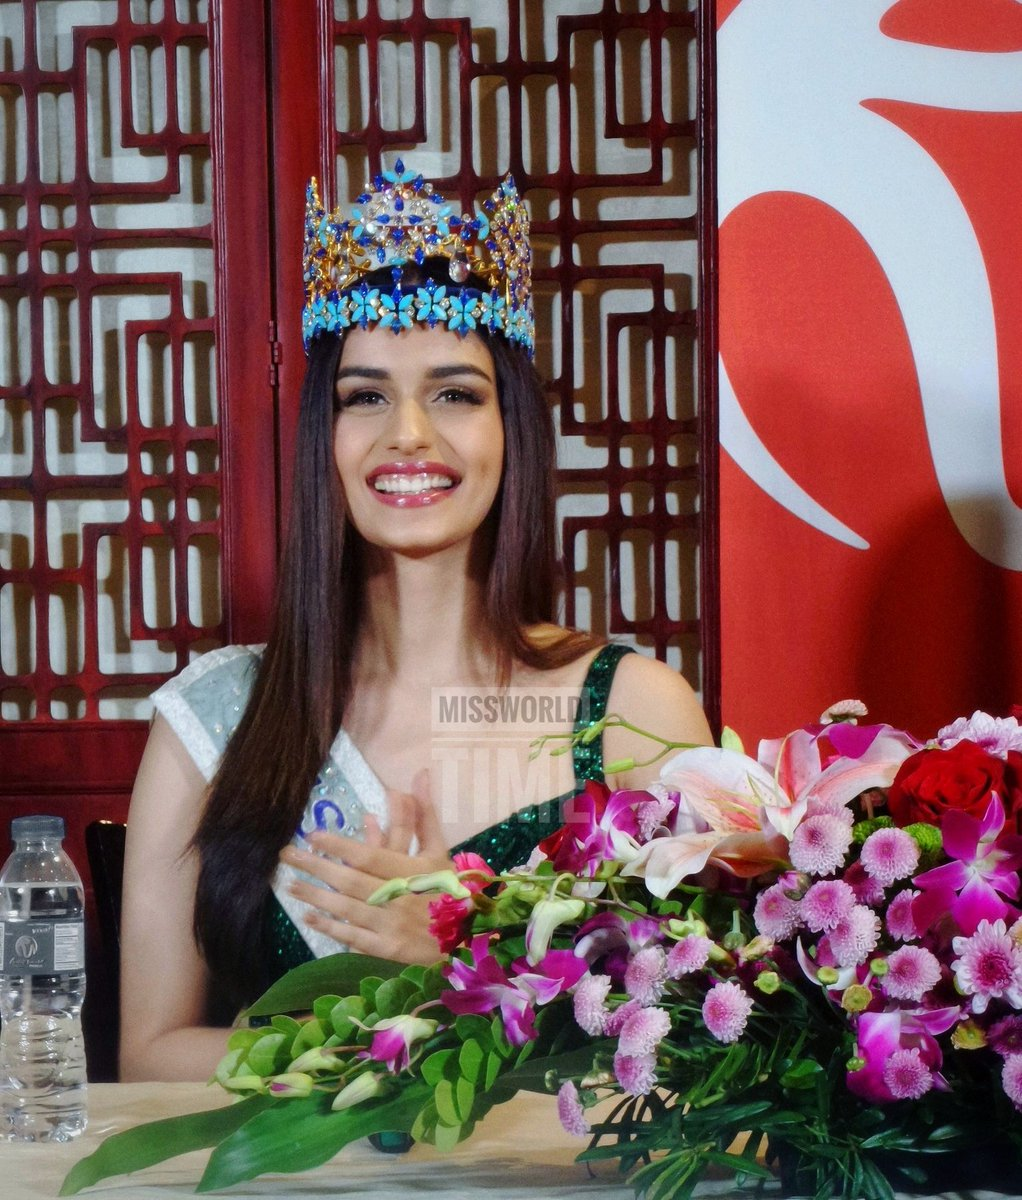 The Official Thread of Miss World 2017 ® Manushi Chhillar - India - Page 5 DoxQJScUYAA04D0